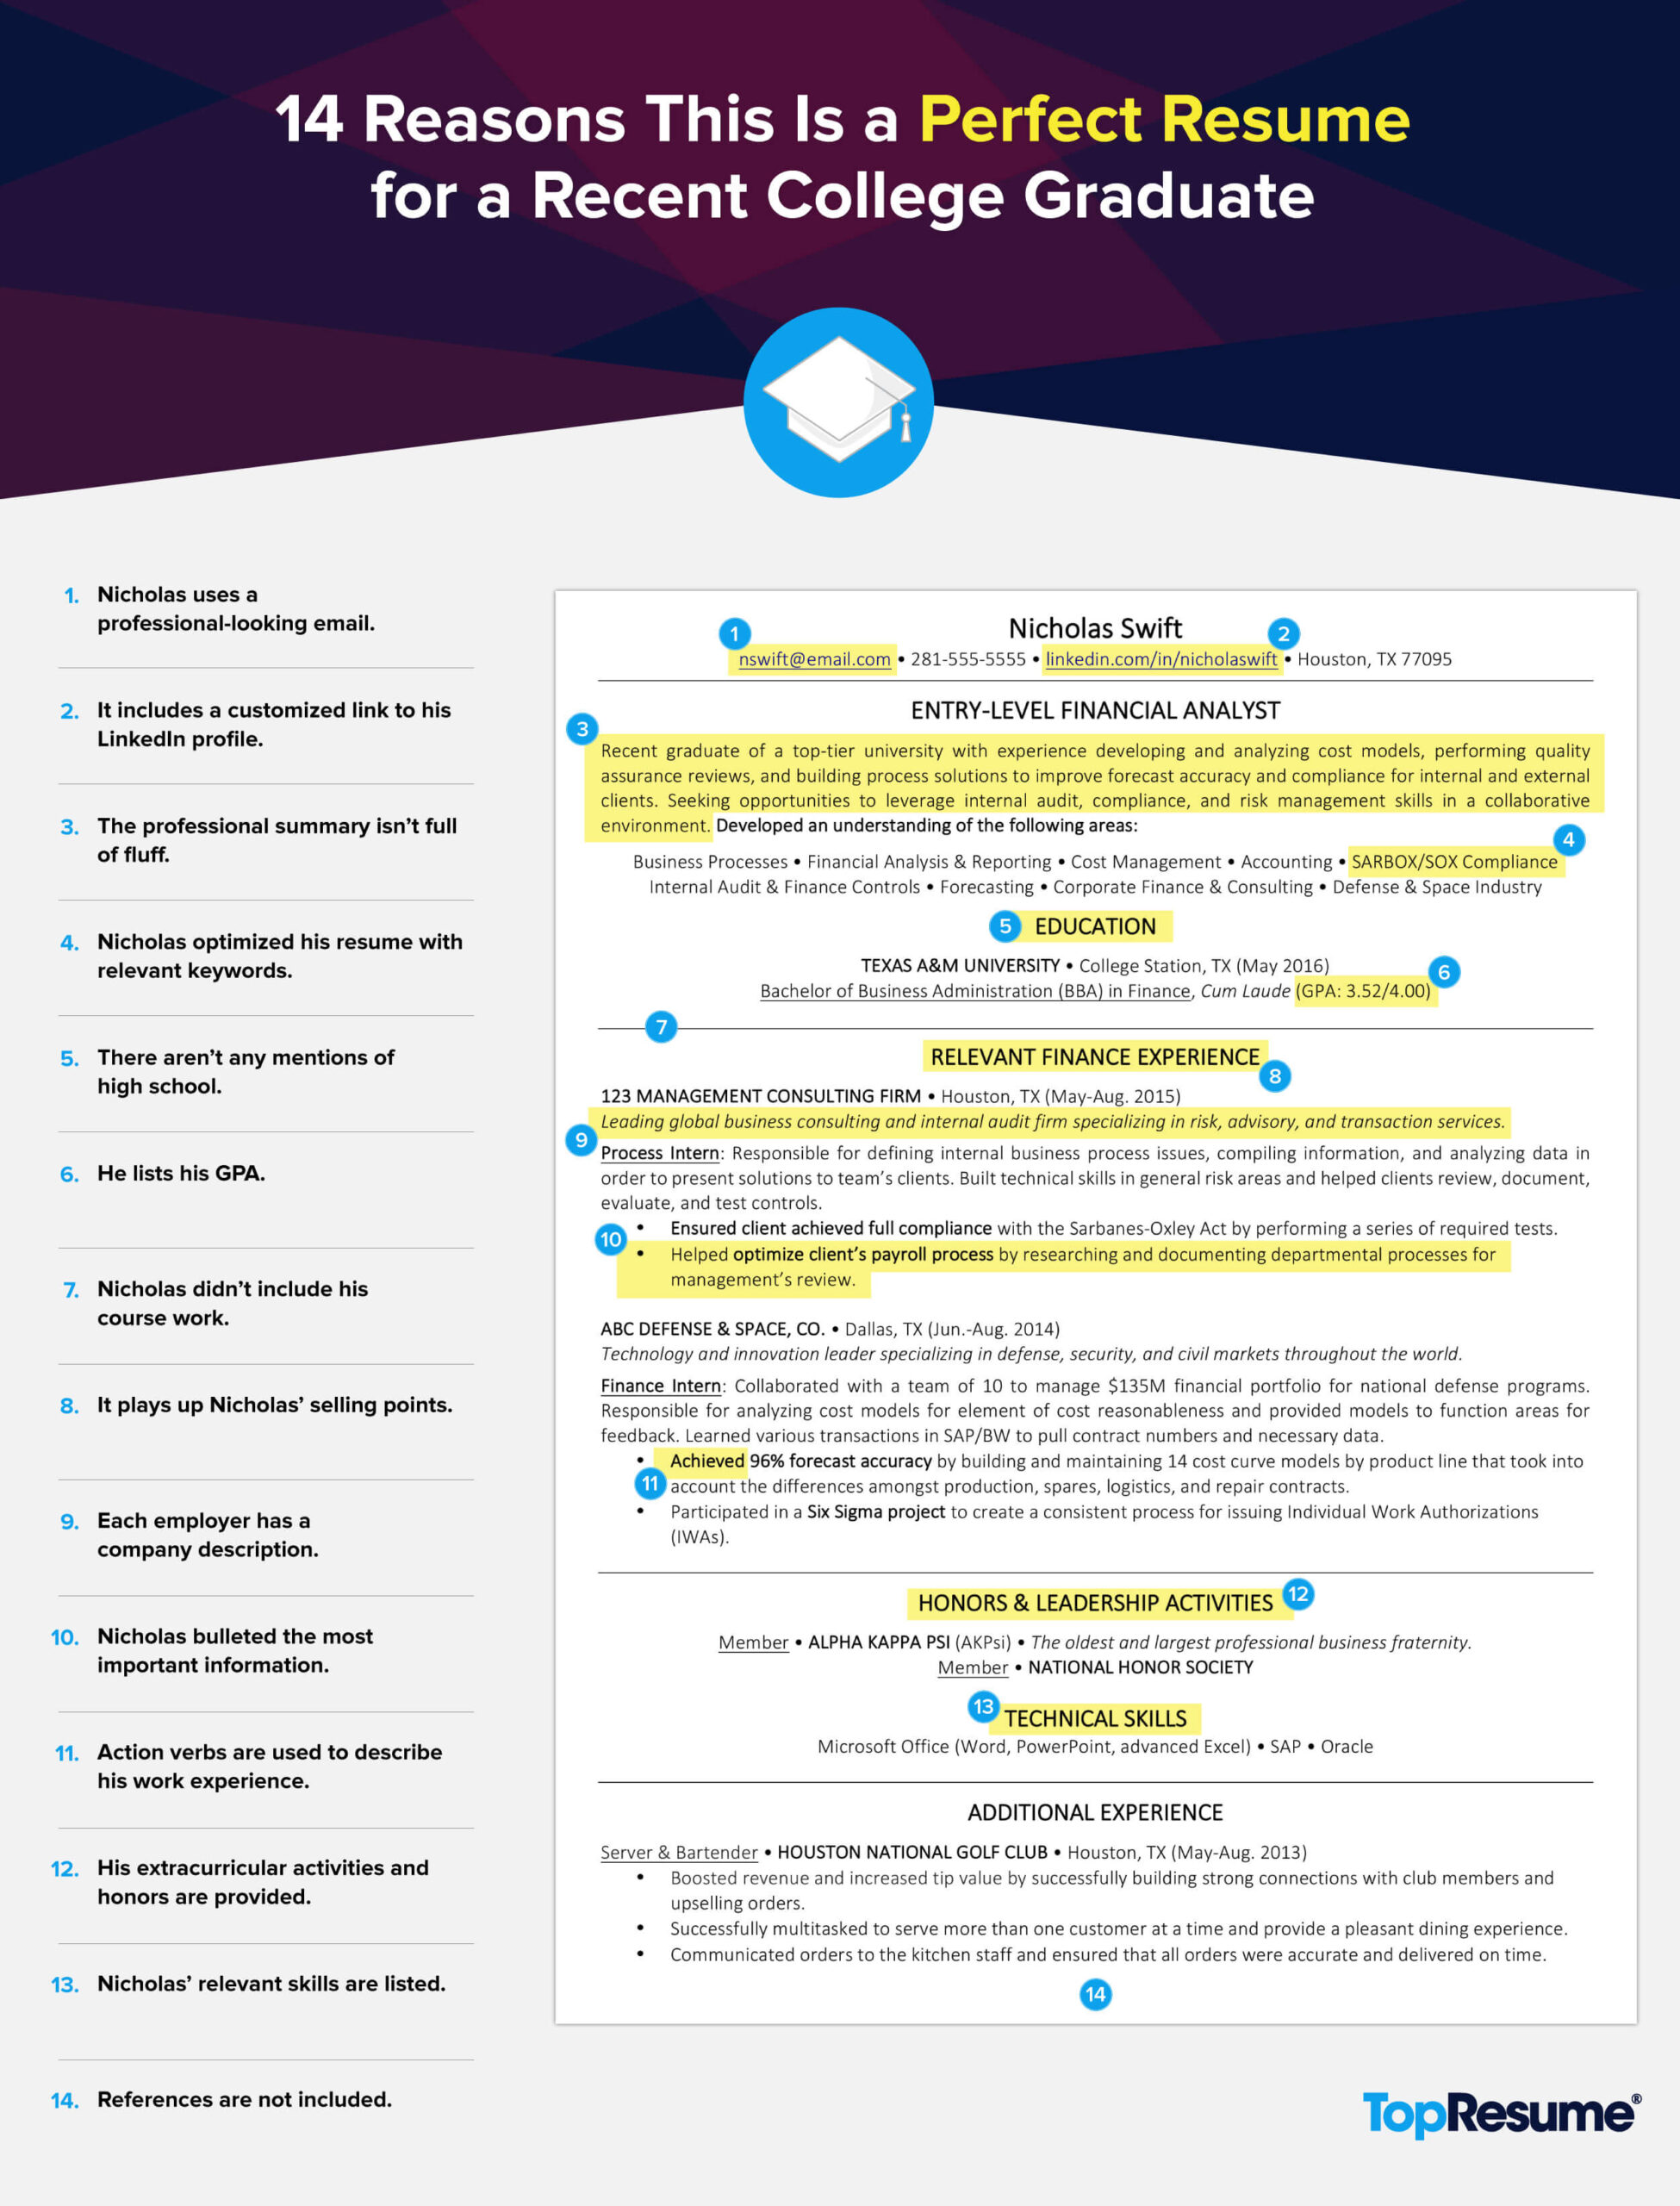 reasons this is perfect recent college graduate resume topresume format for Resume Resume Format For Recent College Graduate